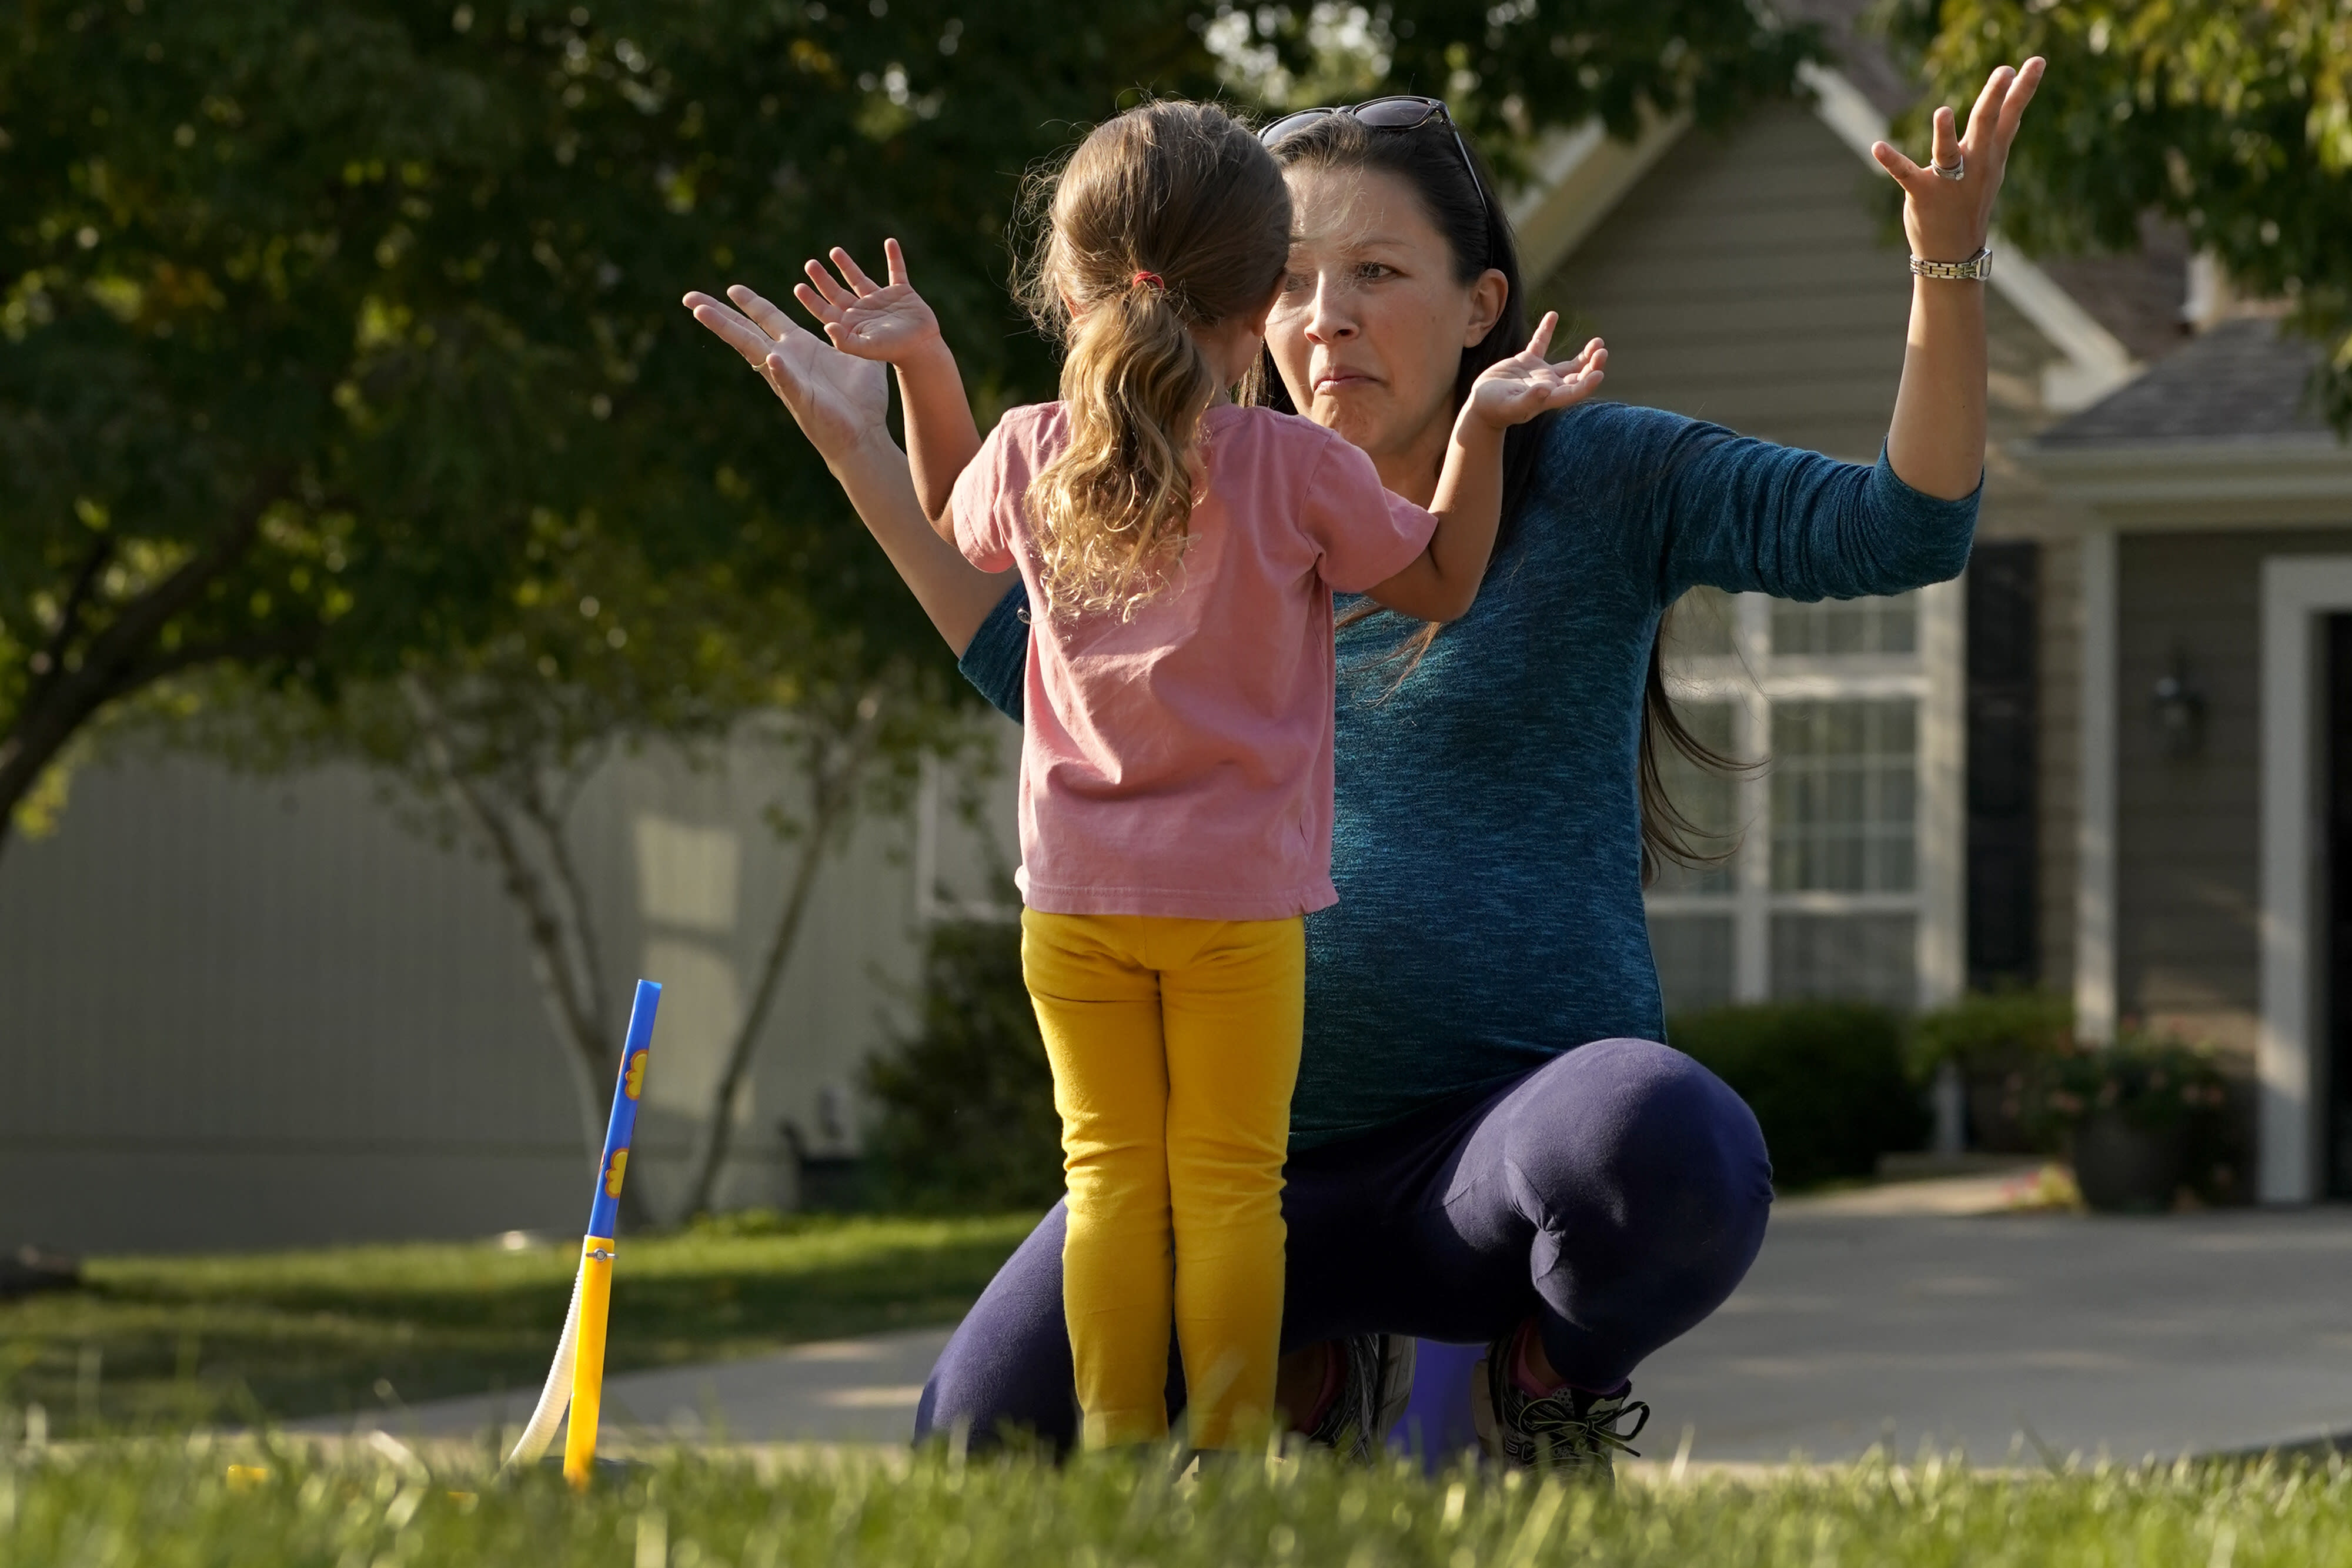 Claire Reagan plays with her daughter Abbie, 3, Monday, Sept. 21, 2020, outside her home in Olathe, Kan. Reagan is keeping her son Evan, 5, from starting kindergarten and her daughter from preschool due to concerns about the coronavirus pandemic. (AP Photo/Charlie Riedel)